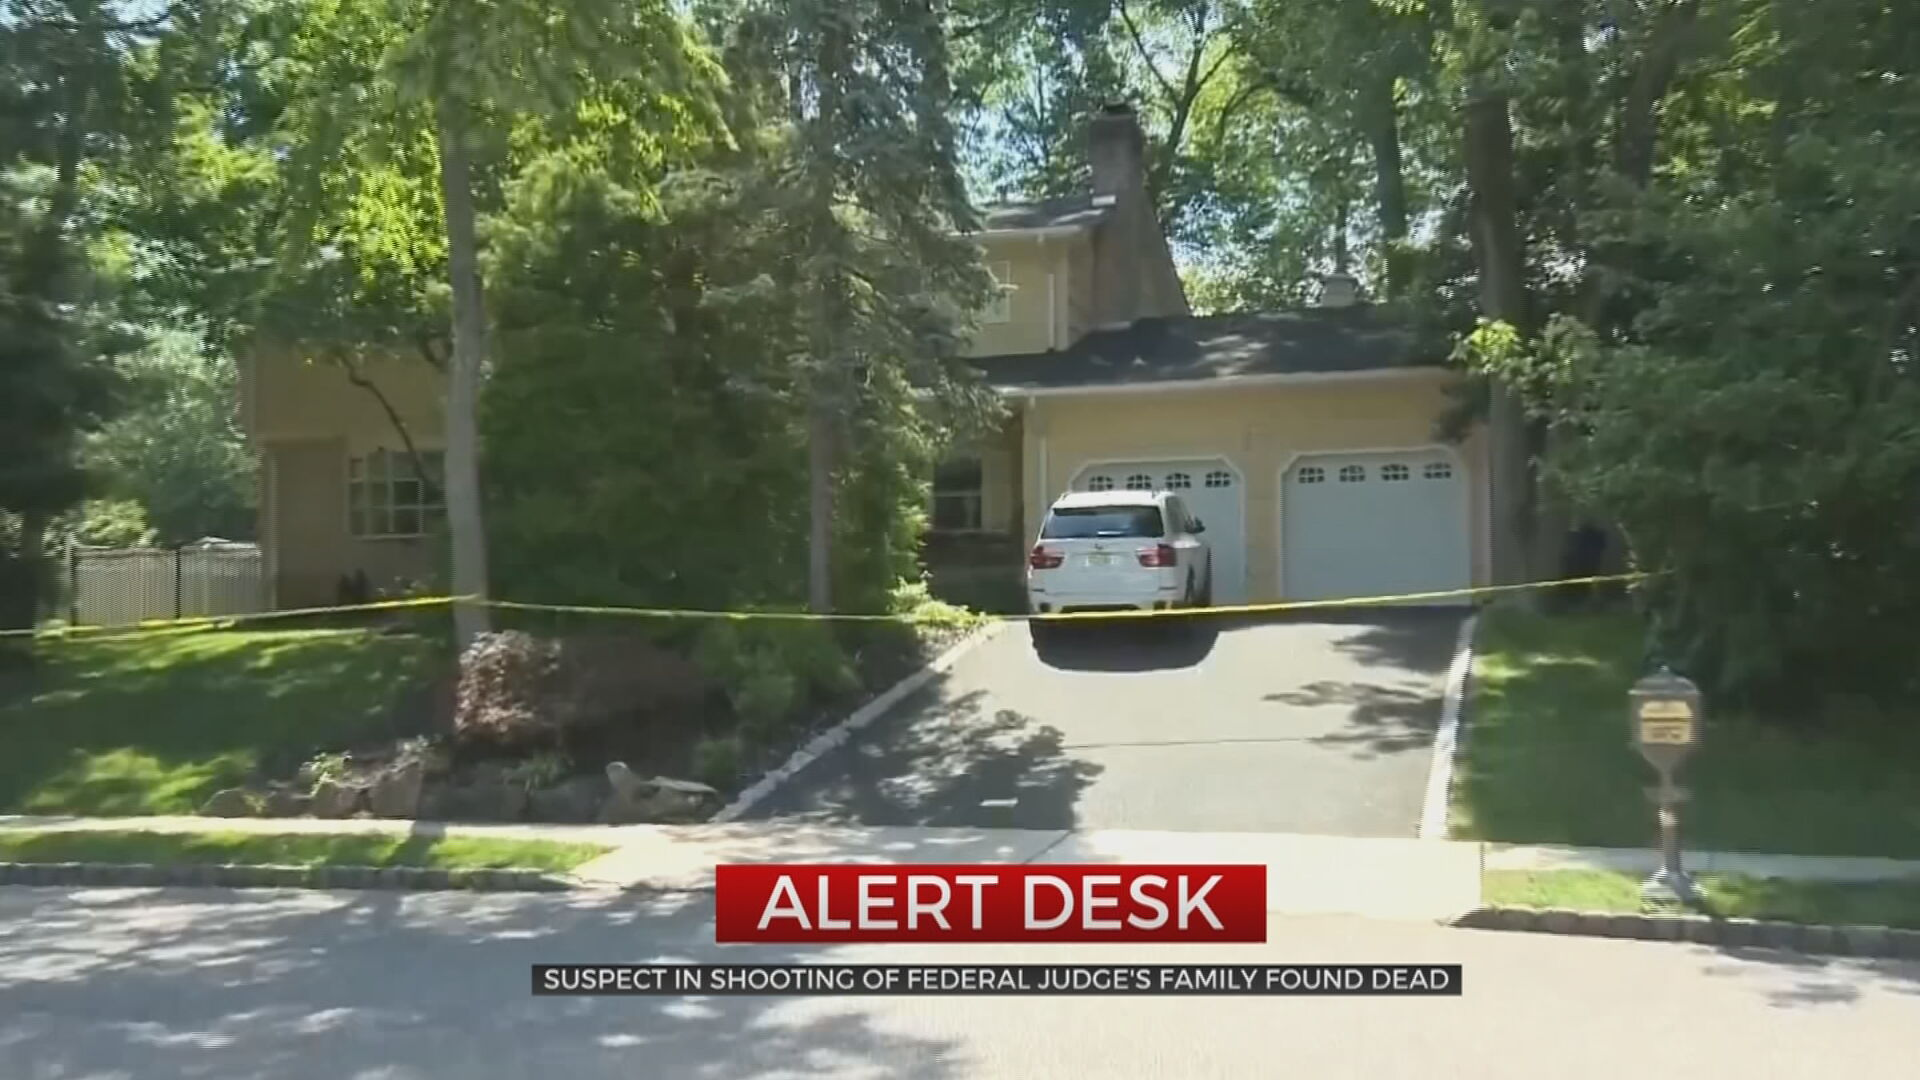 Gunman Kills Son, Wounds Husband Of Federal Judge At Their New Jersey Home; Suspect Dead